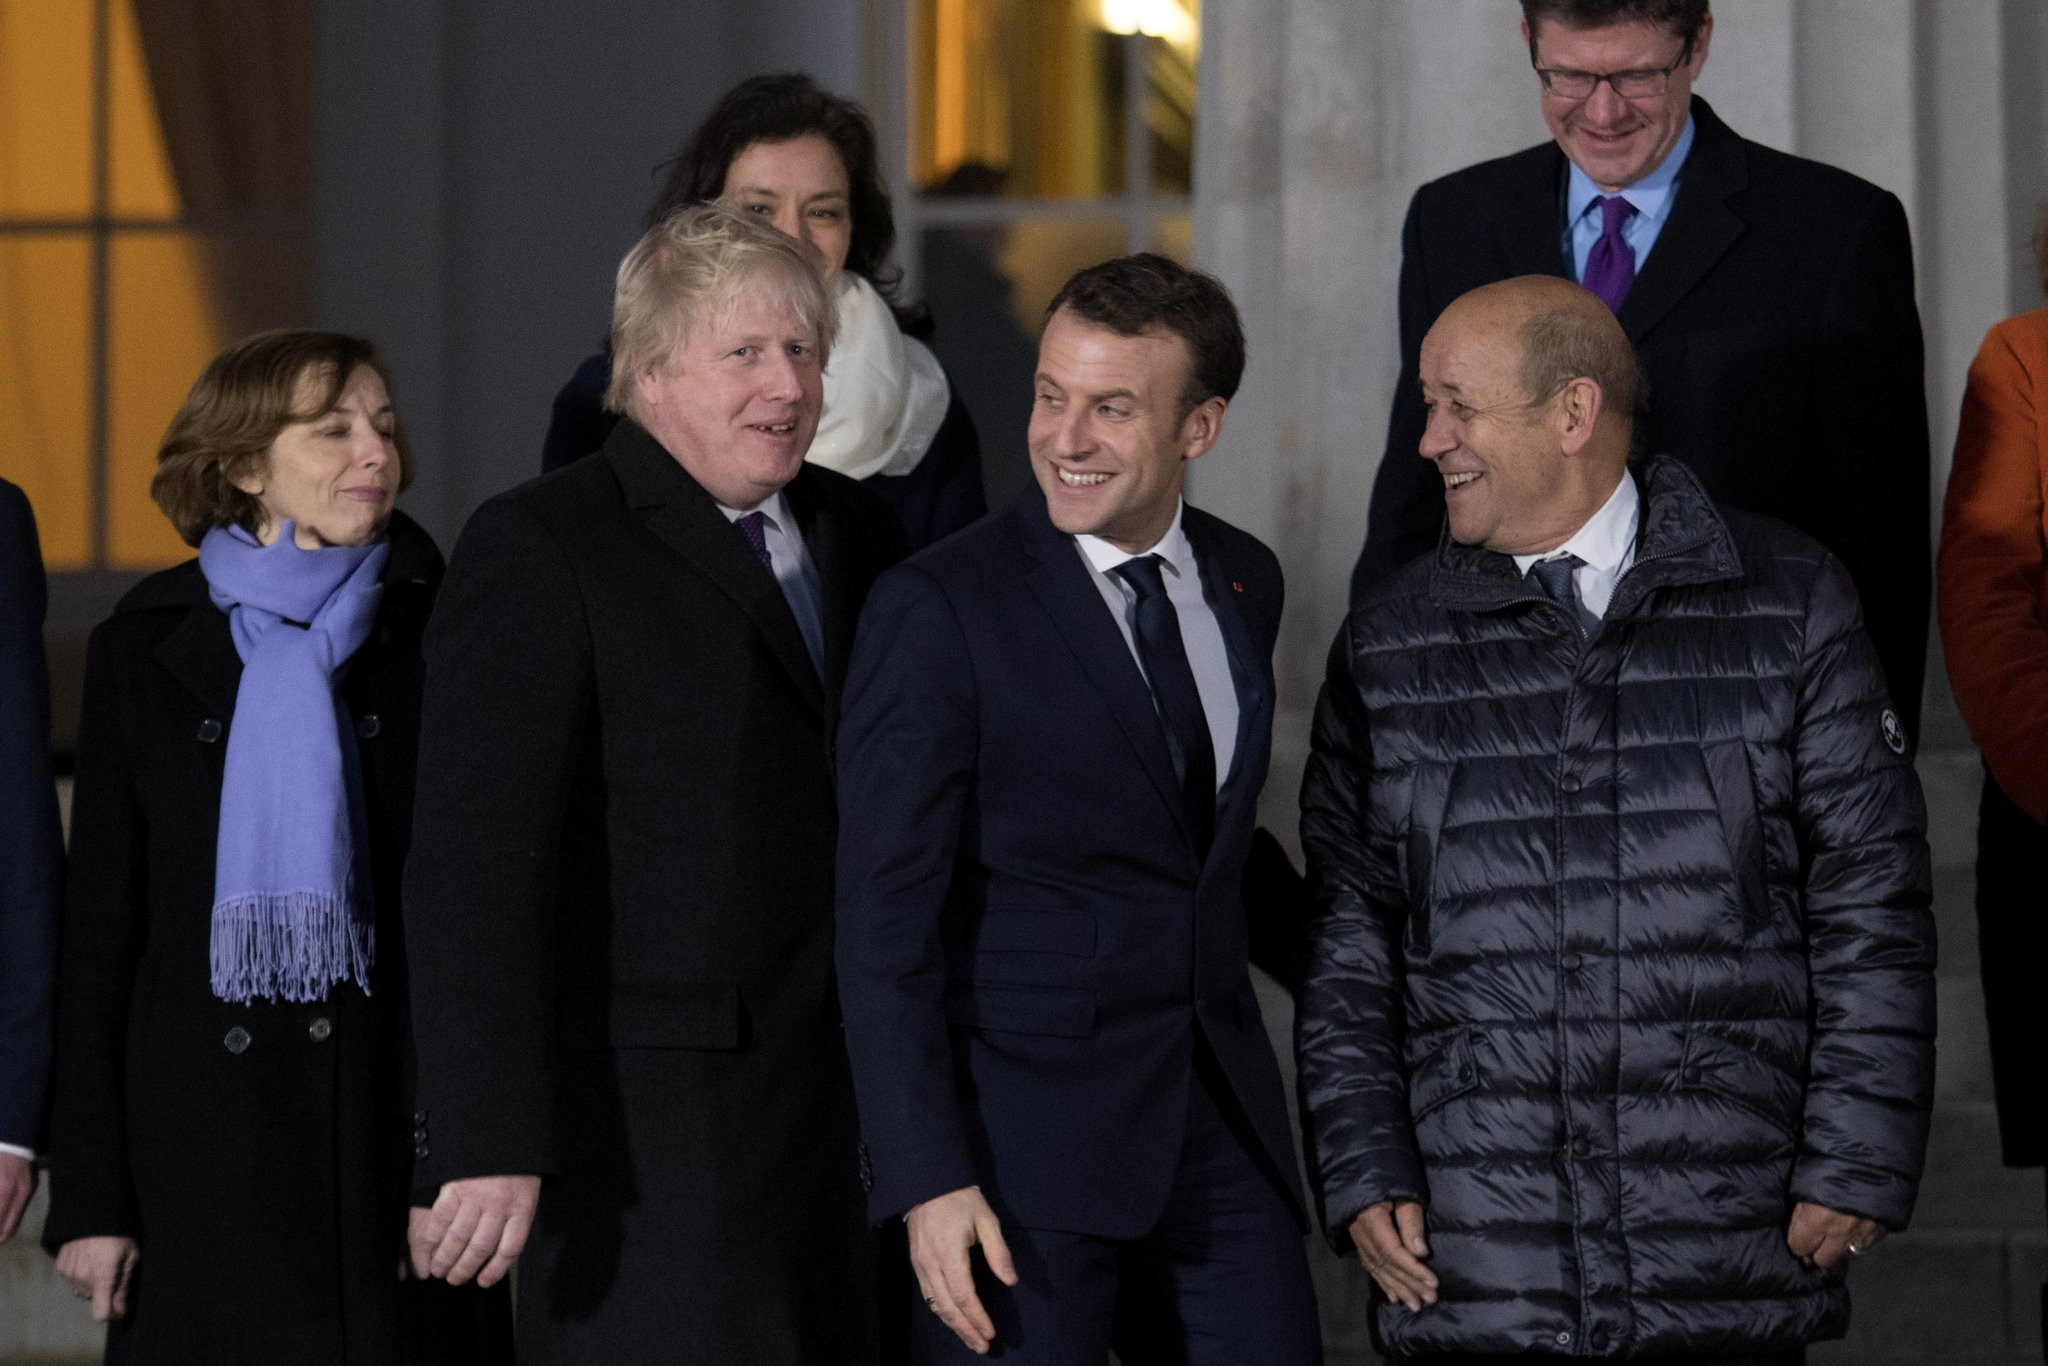 Britain's Foreign Secretary Boris Johnson and France's President Emmanuel Macron walk to pose for a family photo at the Royal Military Academy Sandhurst, during UK-France summit talks in Sandhurst, Britain, January 18, 2018. (REUTERS Photo)